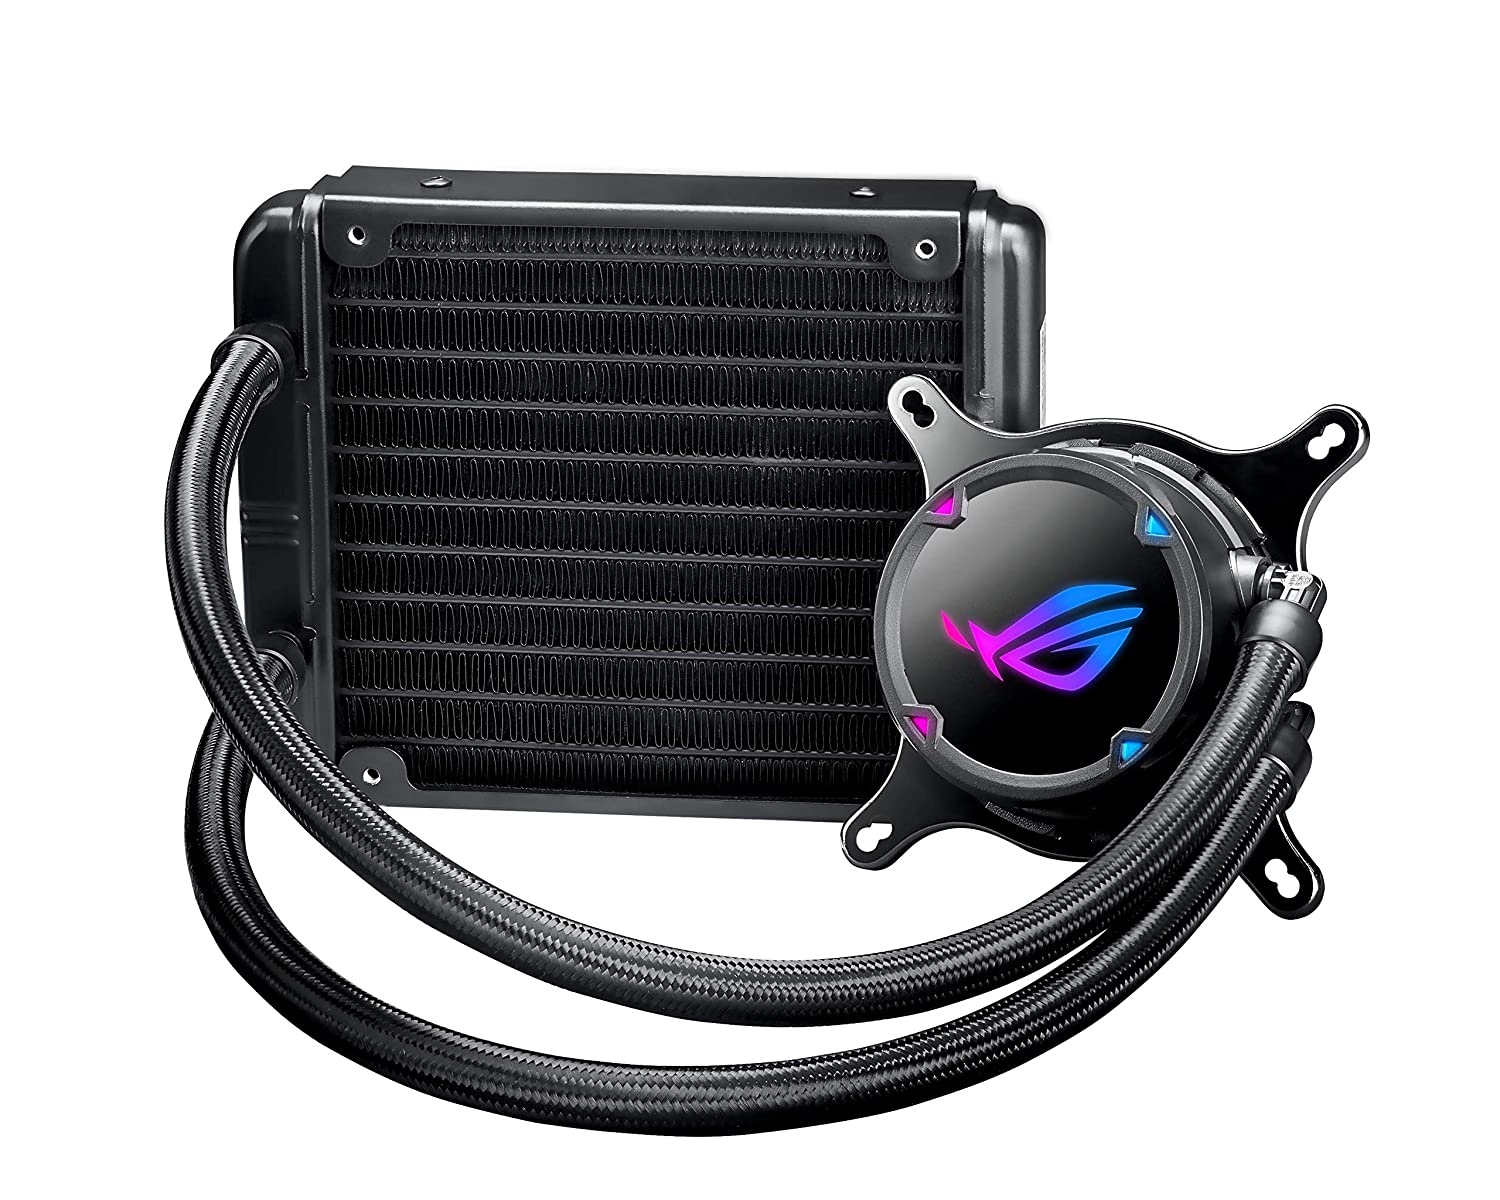 Aura Sync Cooler CPU All-in-One ROG Rev/êtement de Pompe Ncvm et Ventilateur de Radiateur ROG avec /éclairage Addressable RGB ROG Strix LC 120 RGB